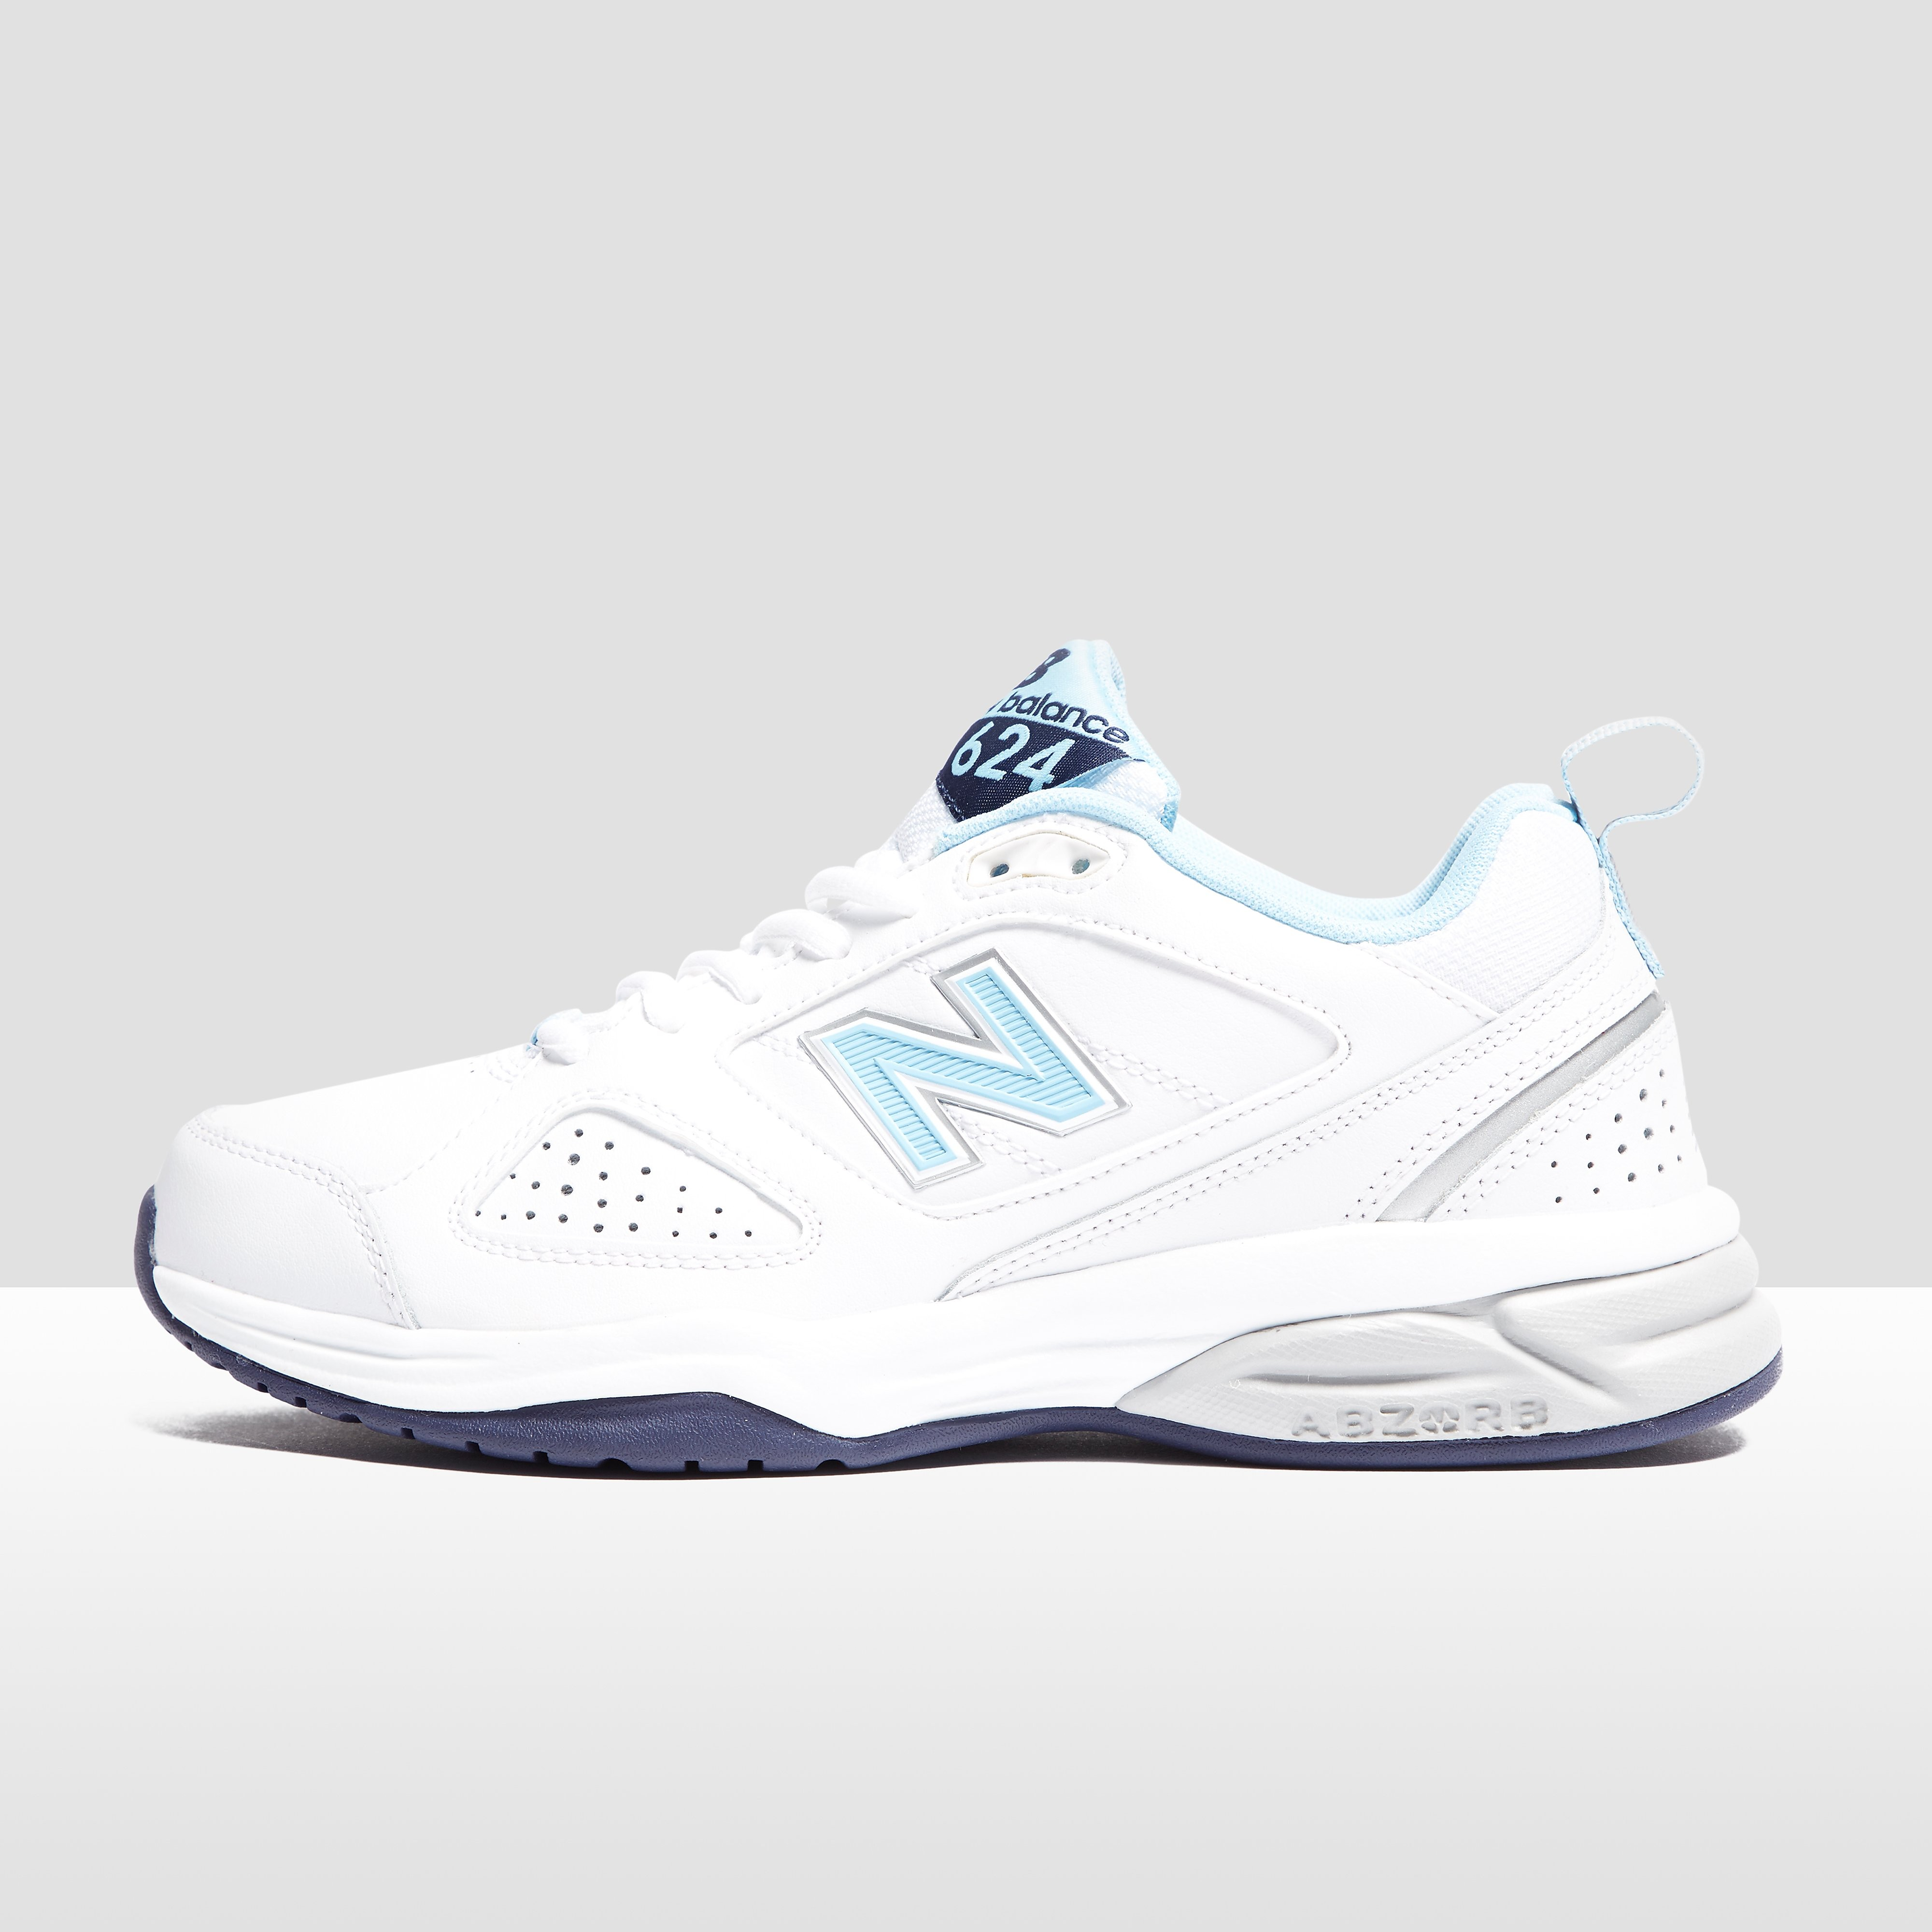 New Balance 624v4 Women's Fitness Shoes